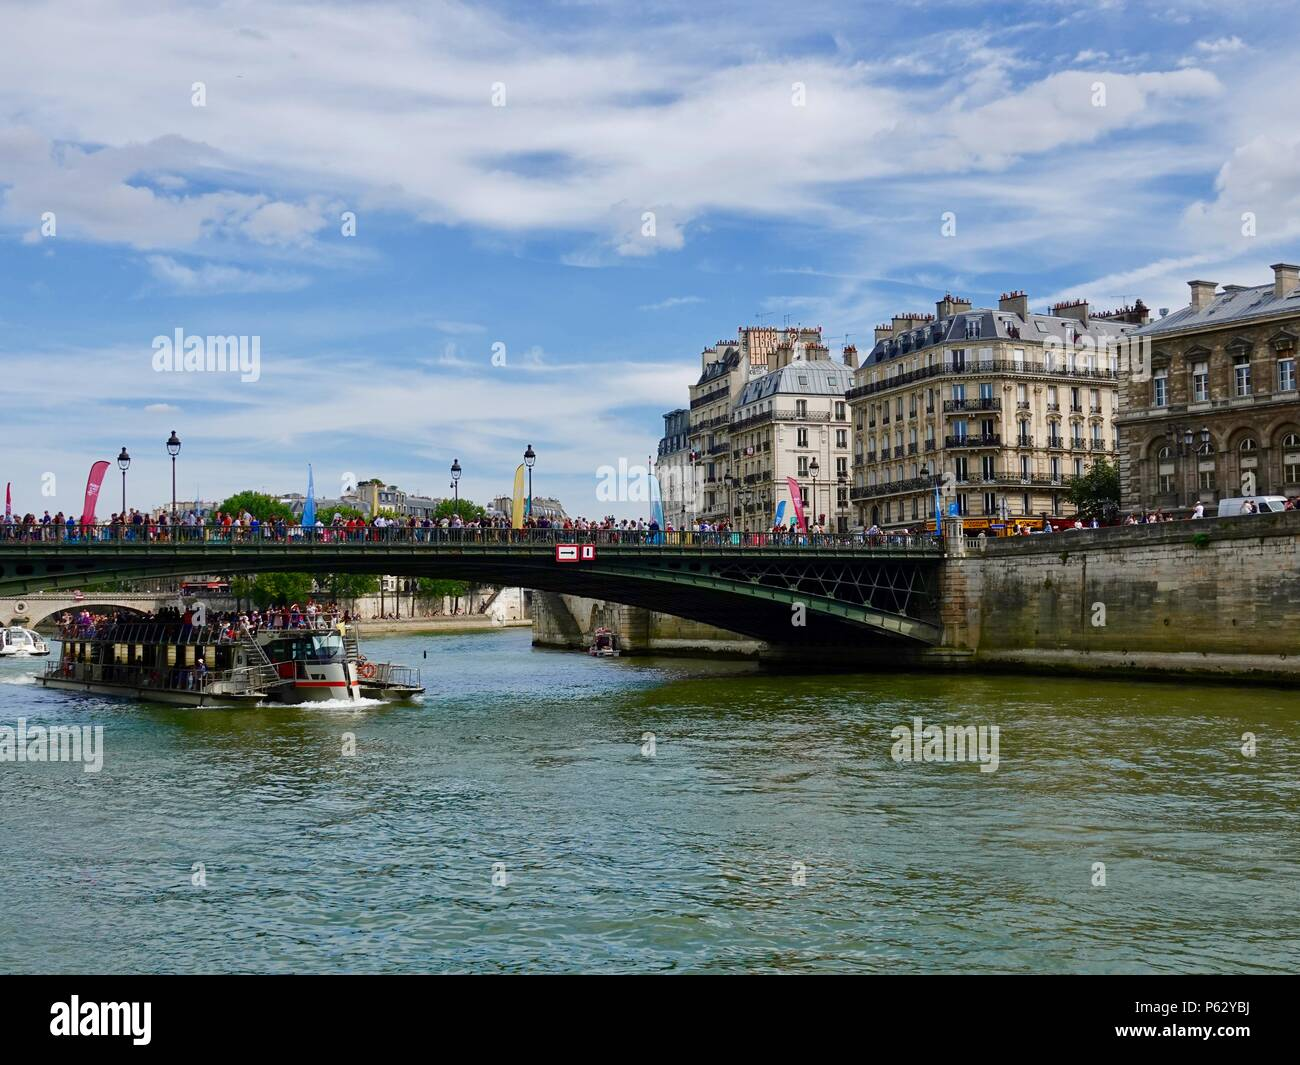 Tourist boat passing under a bridge where crowds of people are participating in an Olympic Day celebration, Paris, France Stock Photo